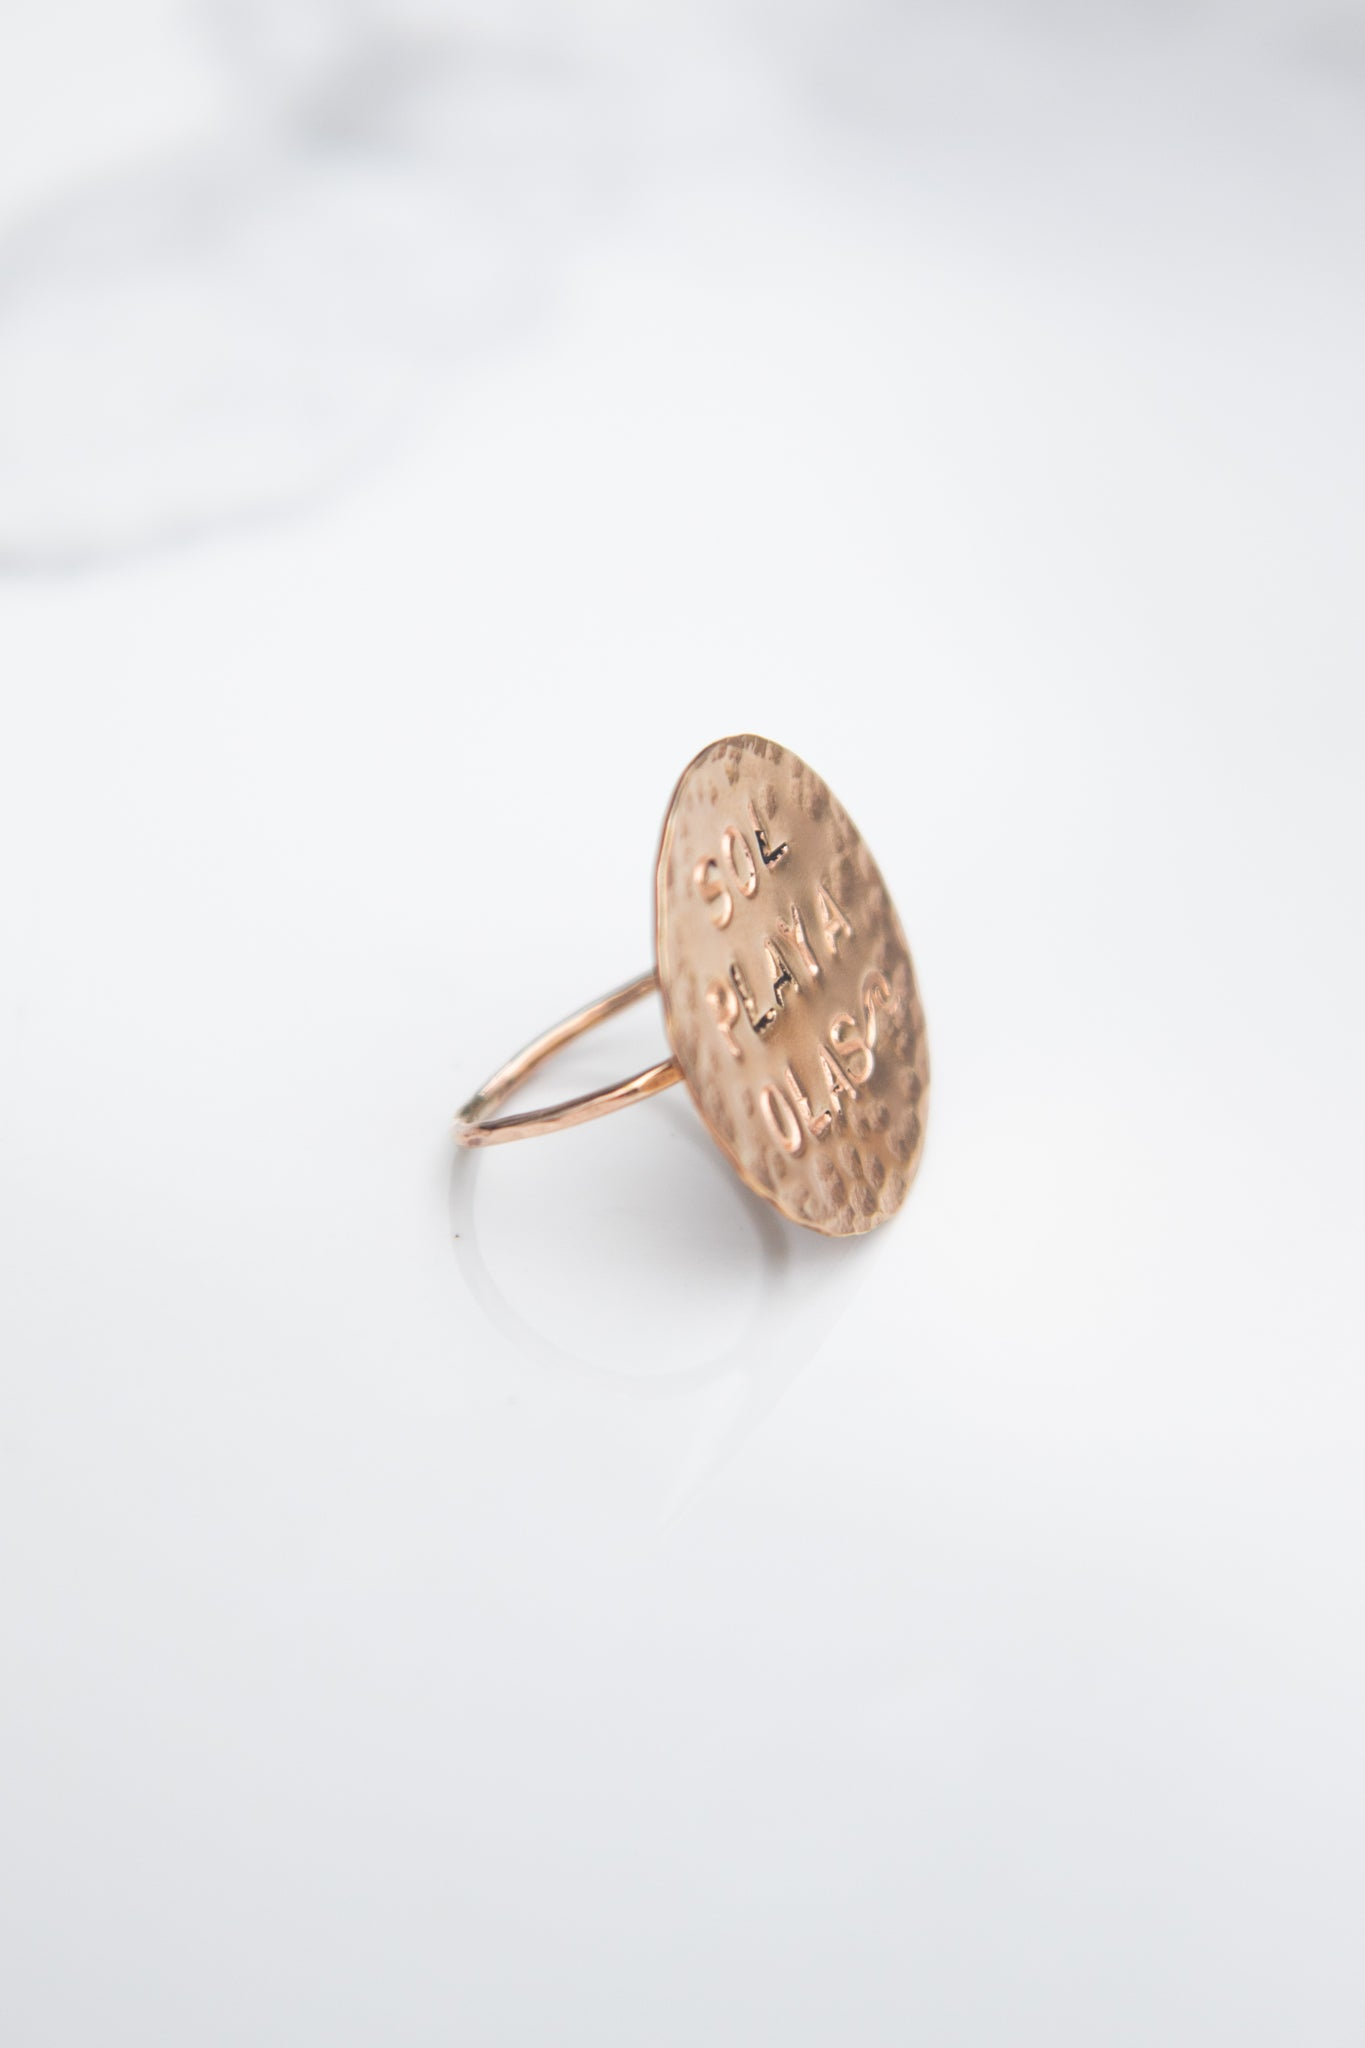 Sol - Playa - Olas -  gold circle Ring